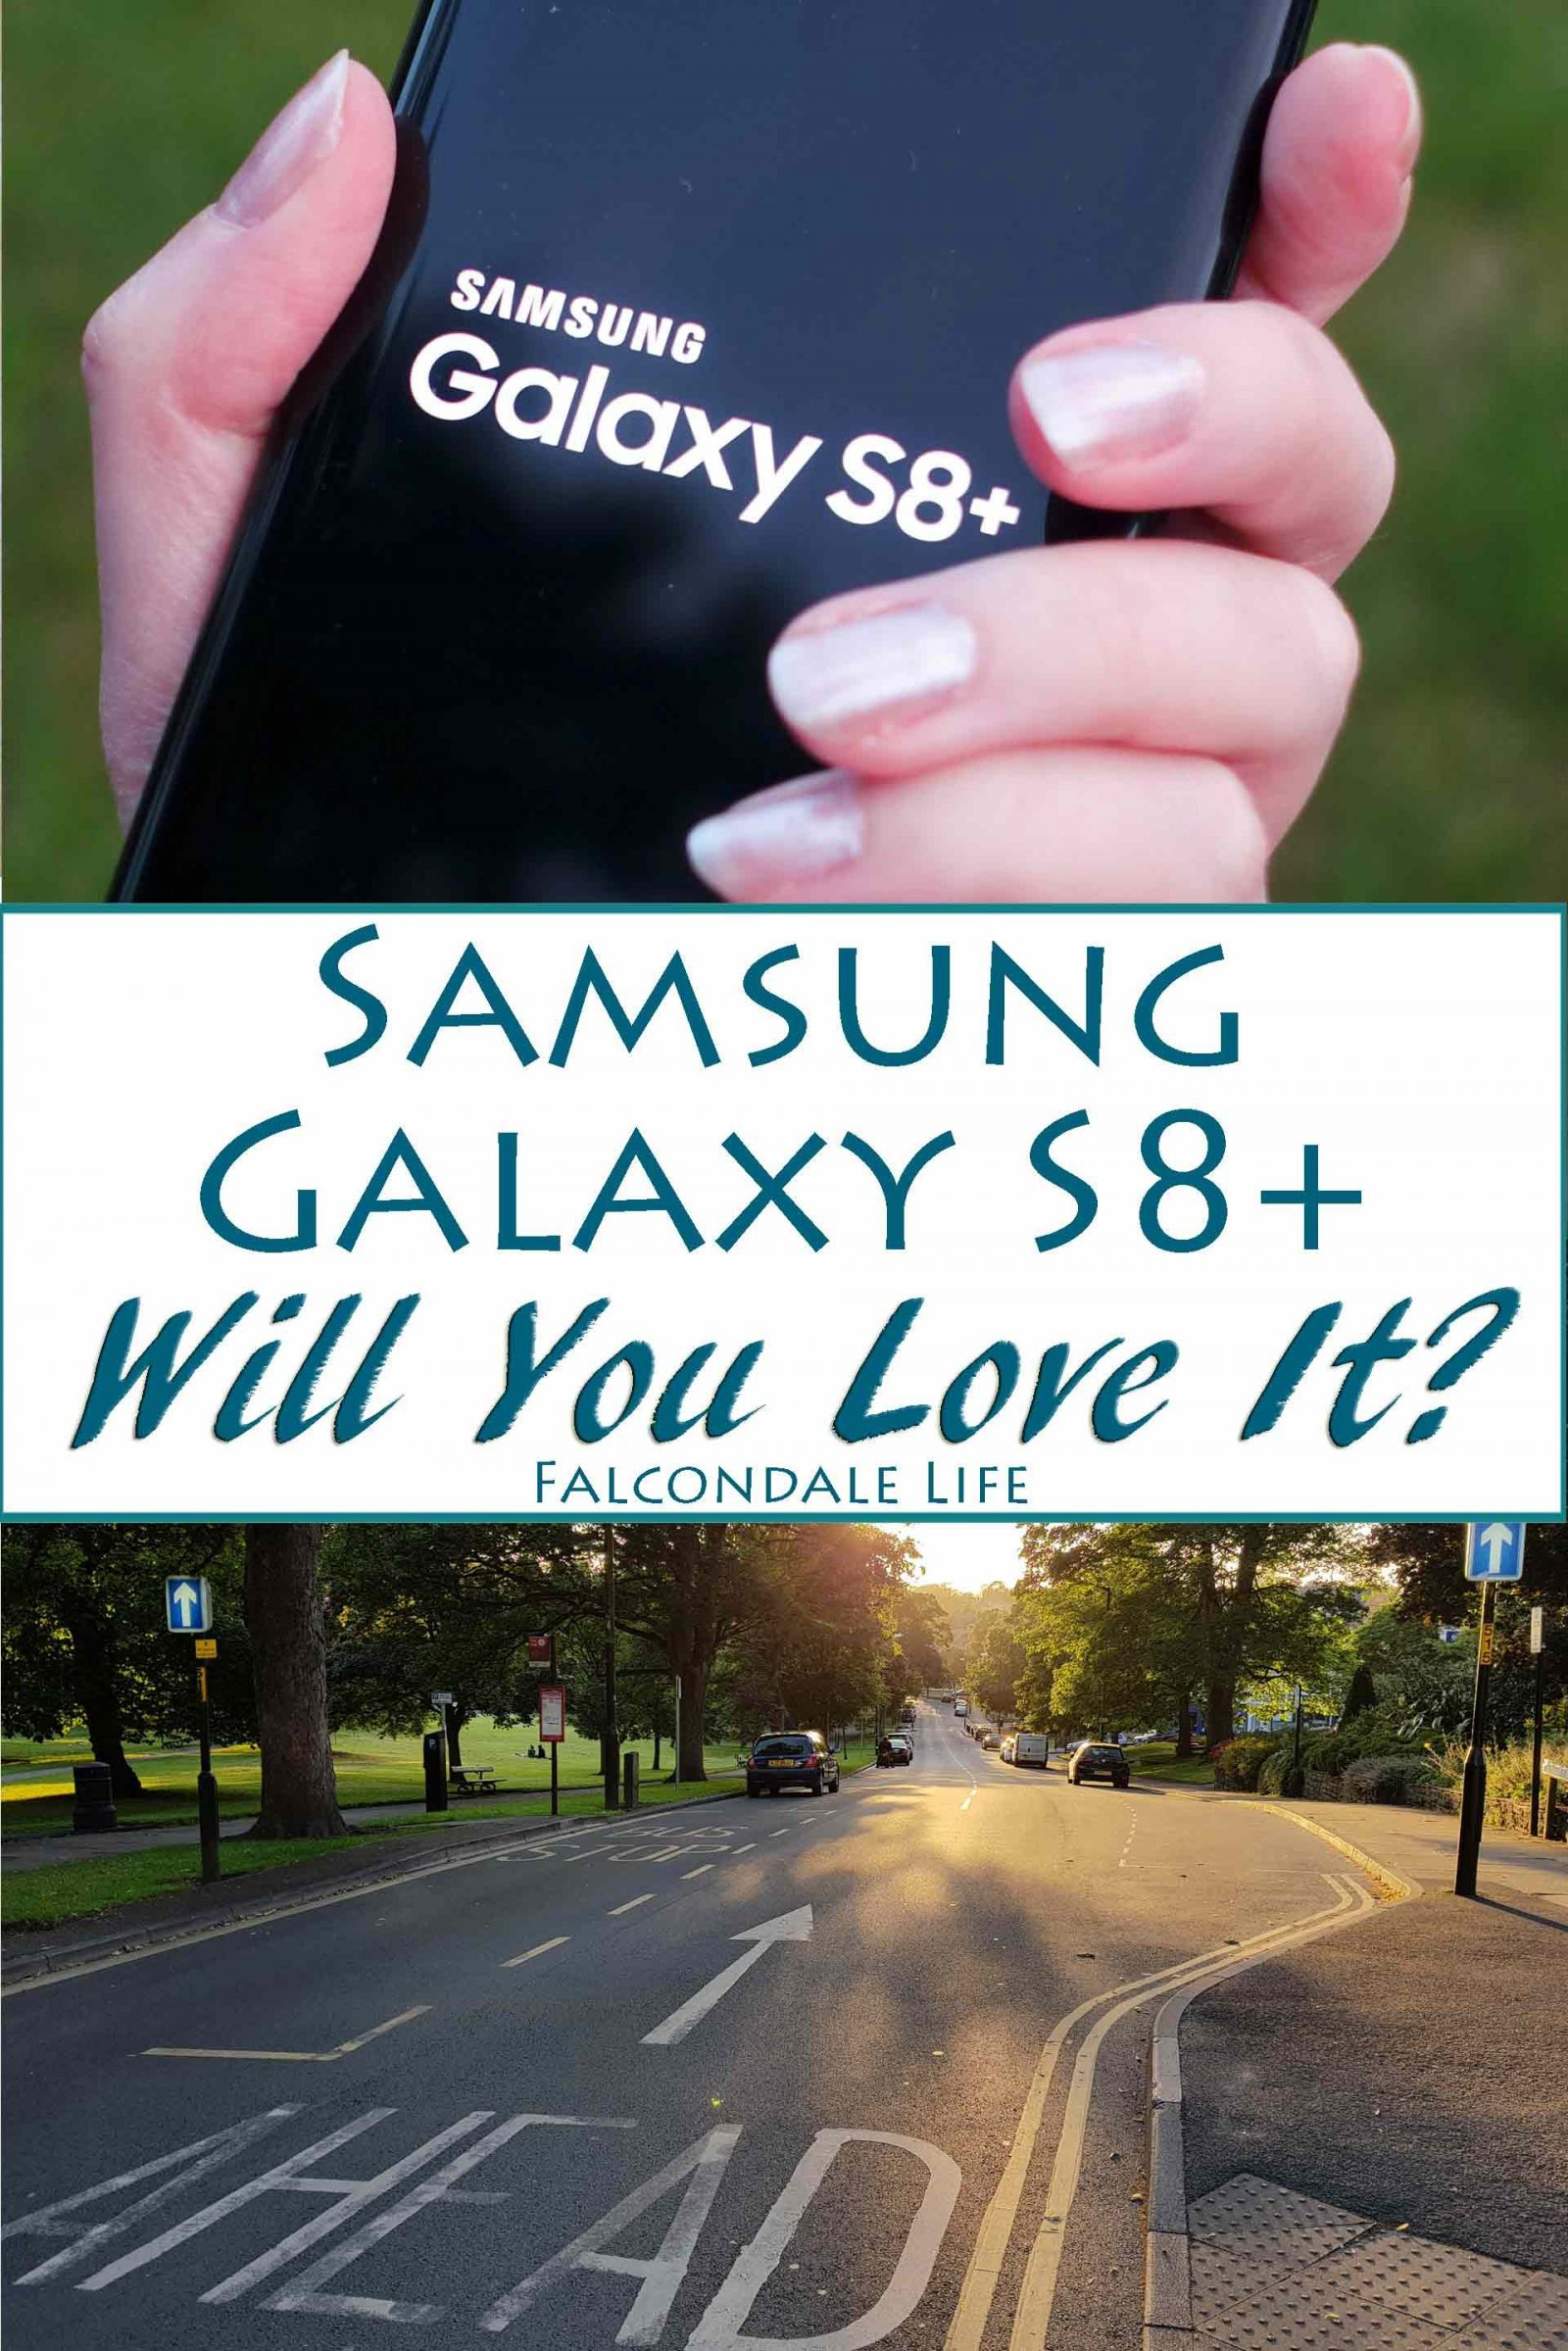 Samsung Galaxy S8+ Will You Love It? Review with photos on Falcondale Life blog. With it's edgeless design and high quality camera, we test the useability of the latest smartphone to the android market and see how it competes.